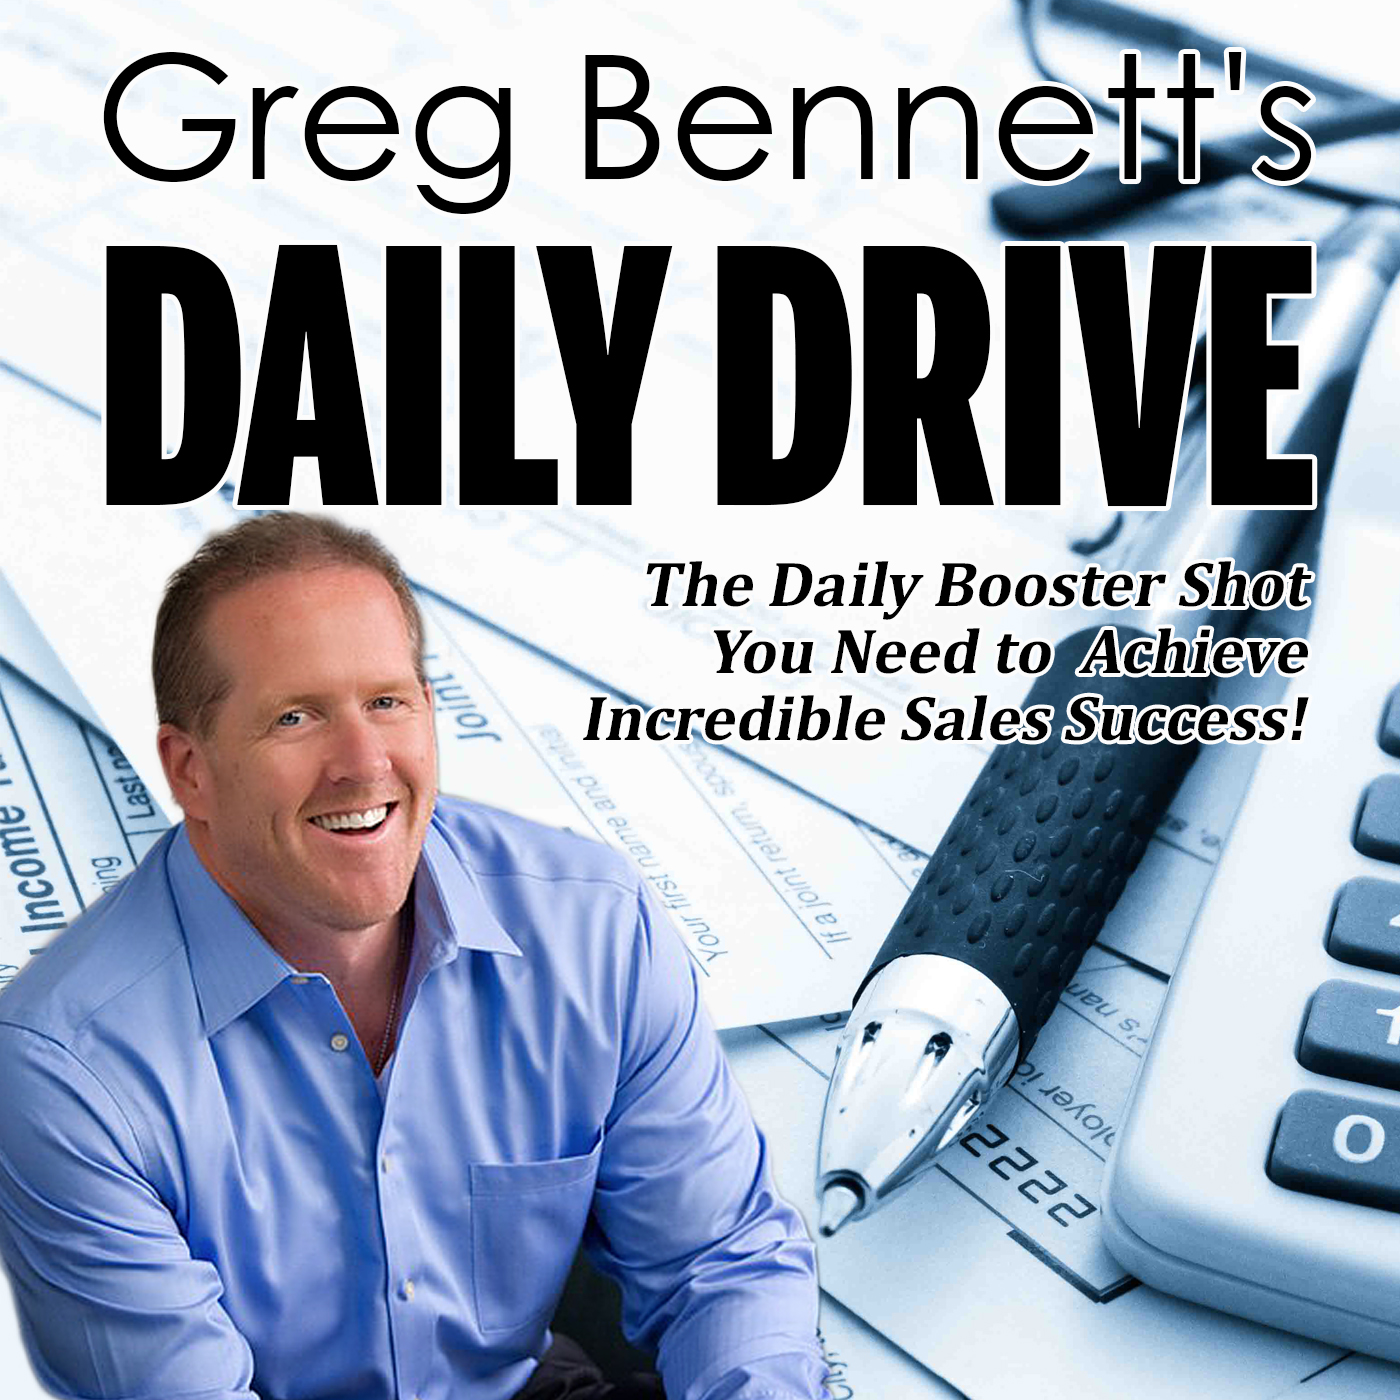 Greg Bennett's Daily Drive Podcast